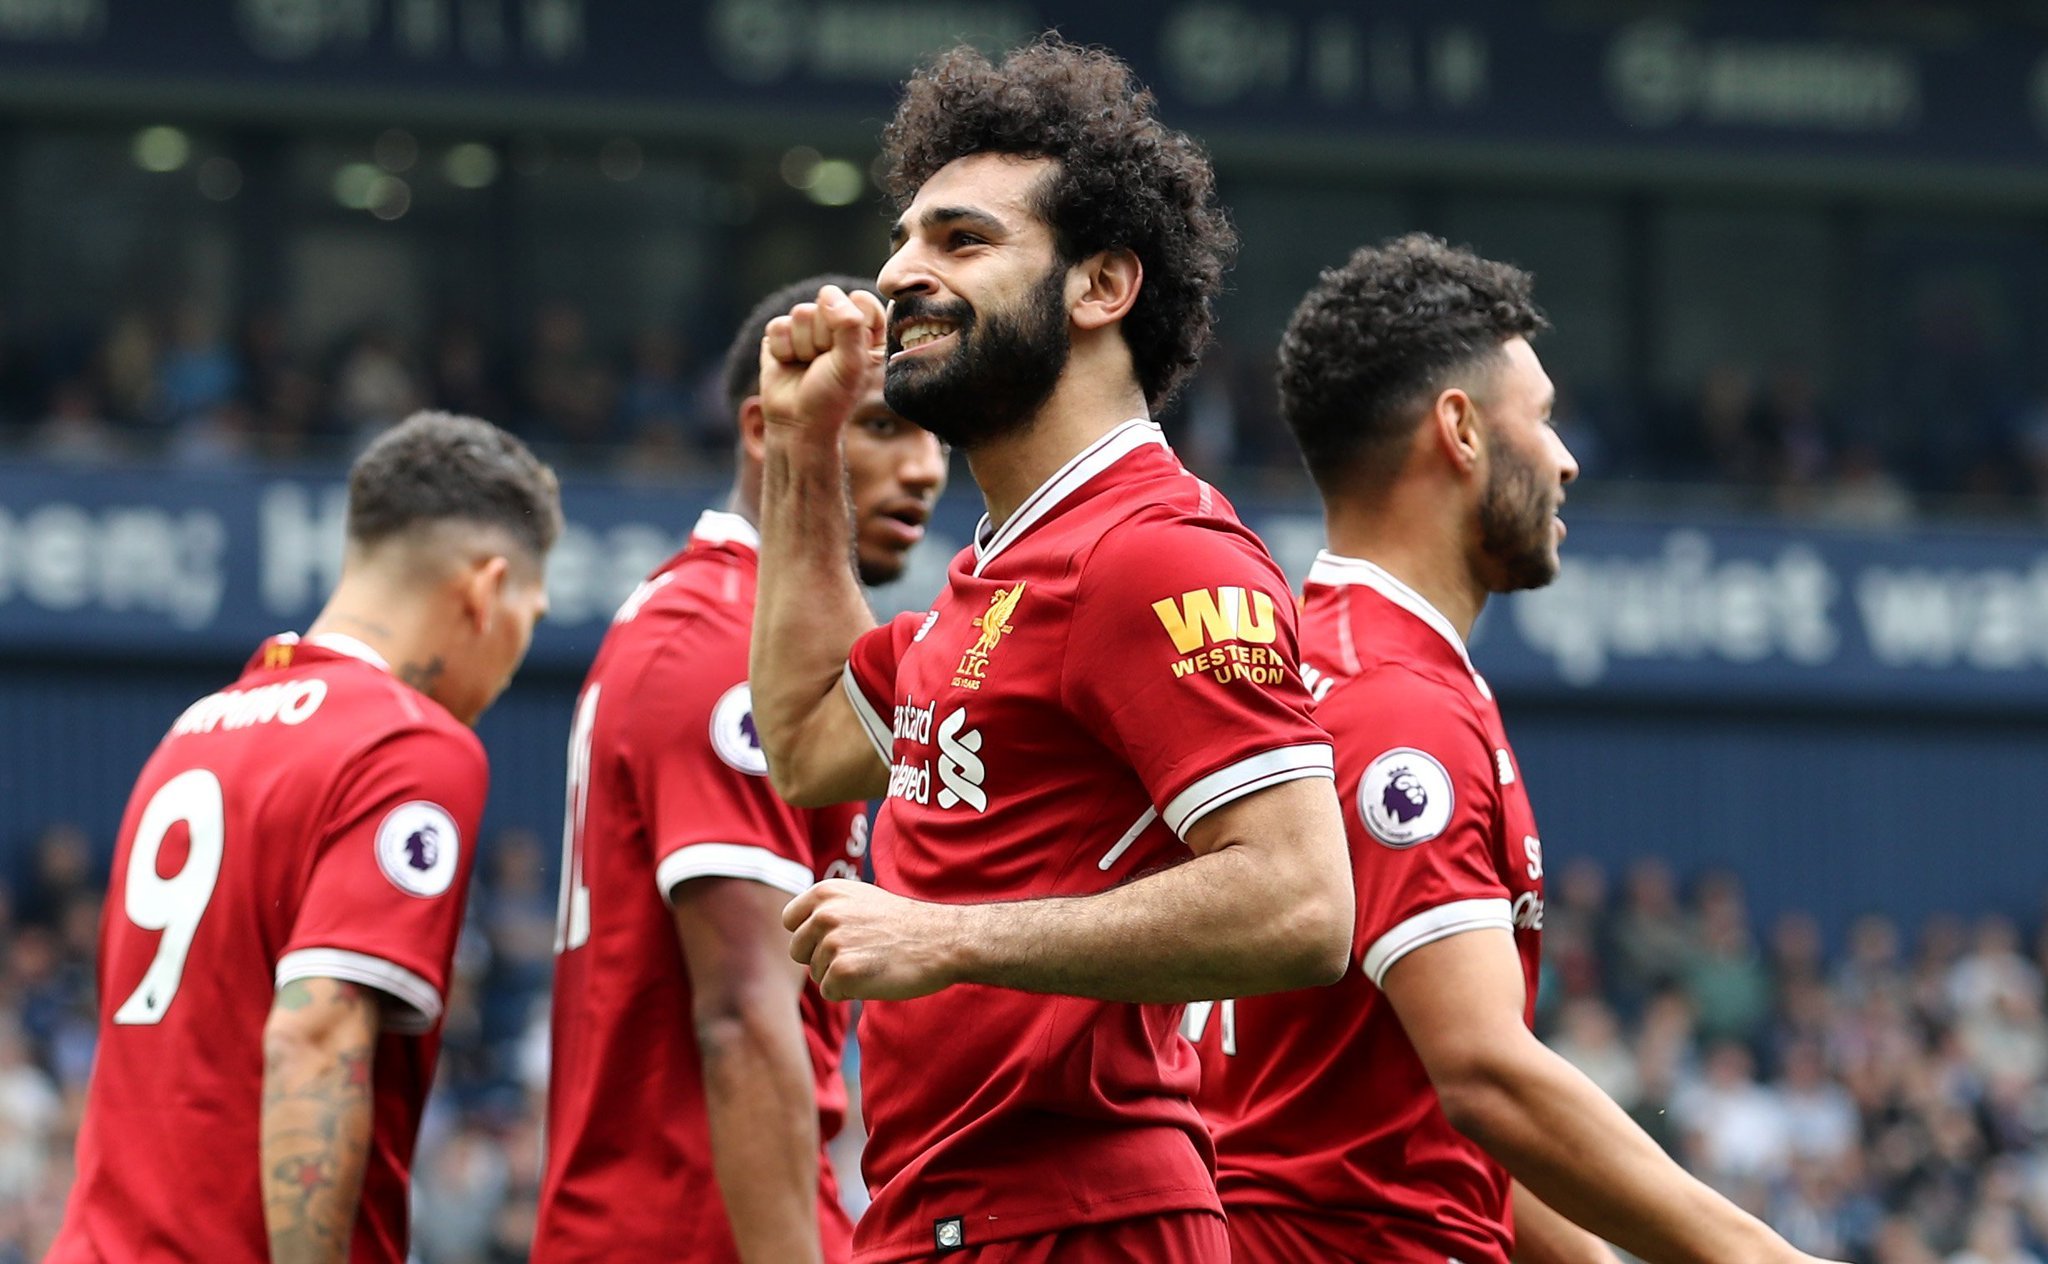 Mohamed Salah for Liverpool this season: ������  ⚽️ 41 goals �� 46 games  #UCL https://t.co/sUVnhnc0Nq